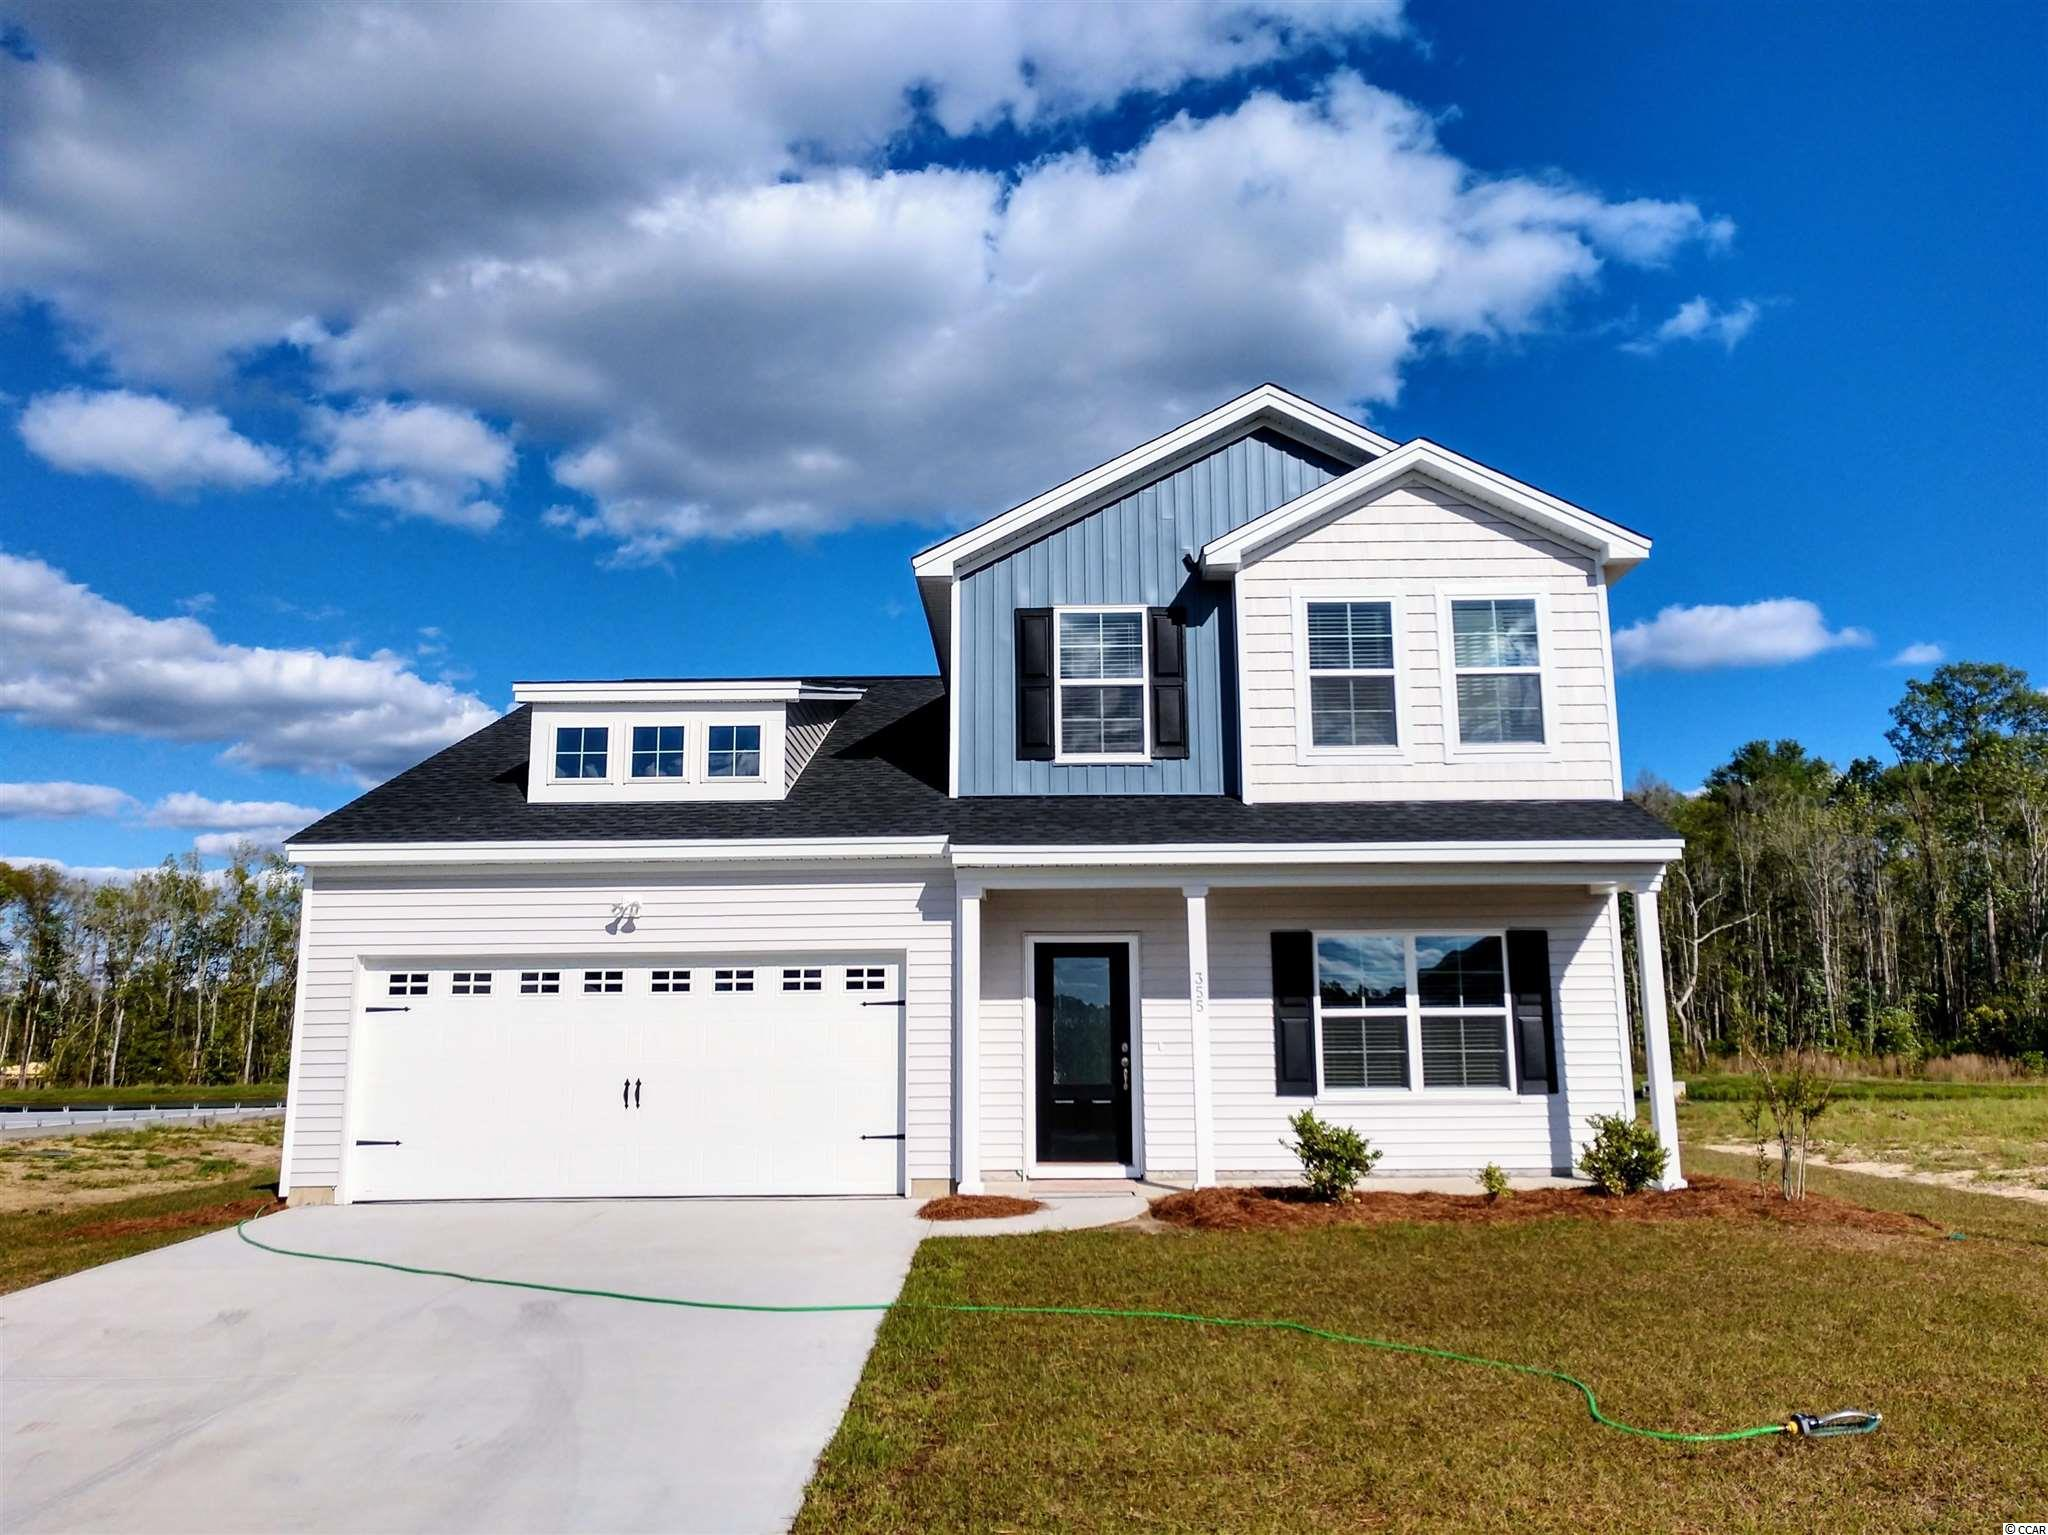 New Community with Pool - Now Selling in Sugarloaf! Just a few minutes from Myrtle Beach and North Myrtle Beach, in Carolina Forest School District, shopping and the beach! This beautiful home will have 2,443 ht sq ft, featuring an open family room/kitchen combo area, 4 bedrooms with the primary bedroom downstairs, Flex Room, Walk-in Attic storage, and a loft. It comes complete with granite and LVP flooring in all the common areas downstairs. All measurements are considered accurate, but buyer to verify. Not the right home? We offer 6 other home plans, from 1,655 to 2,771 Htd SF, 3-6 bedrooms, 2-4 baths. We have the home that will meet your needs! All homes have 2 car garages. Included features: Advanced Framing; Natural Gas! Gas heat; Tank-less gas hot water; Recessed Ceiling lights in Kitchen; Vanity Light in all baths; GE Appliances; Kitchen Granite countertops; Programmable Thermostats; 9' ceilings on first floor; Energy Efficient with LED bulbs, 14-SEER HVAC system, Air Barrier, and Sealing; Architectural Roof Shingles; Vinyl siding with Lifetime Warranty.